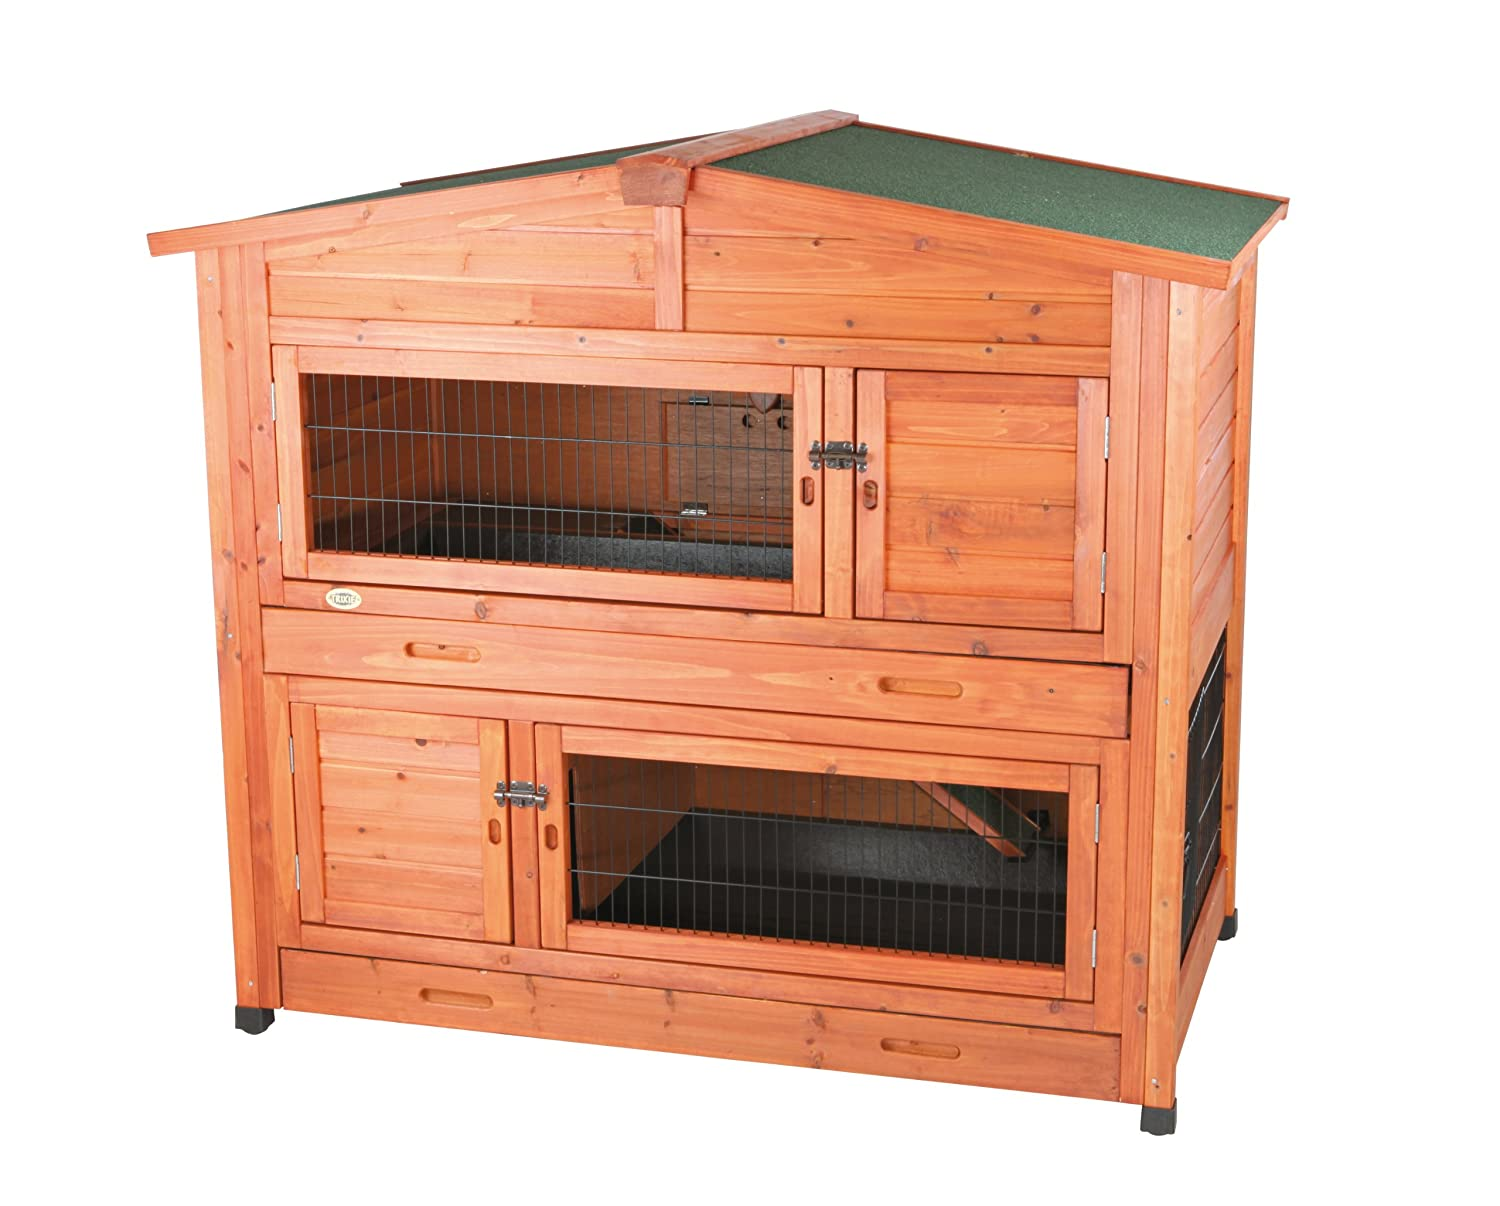 Sell everything 2 story rabbit hutch with attic for 2 rabbit hutch